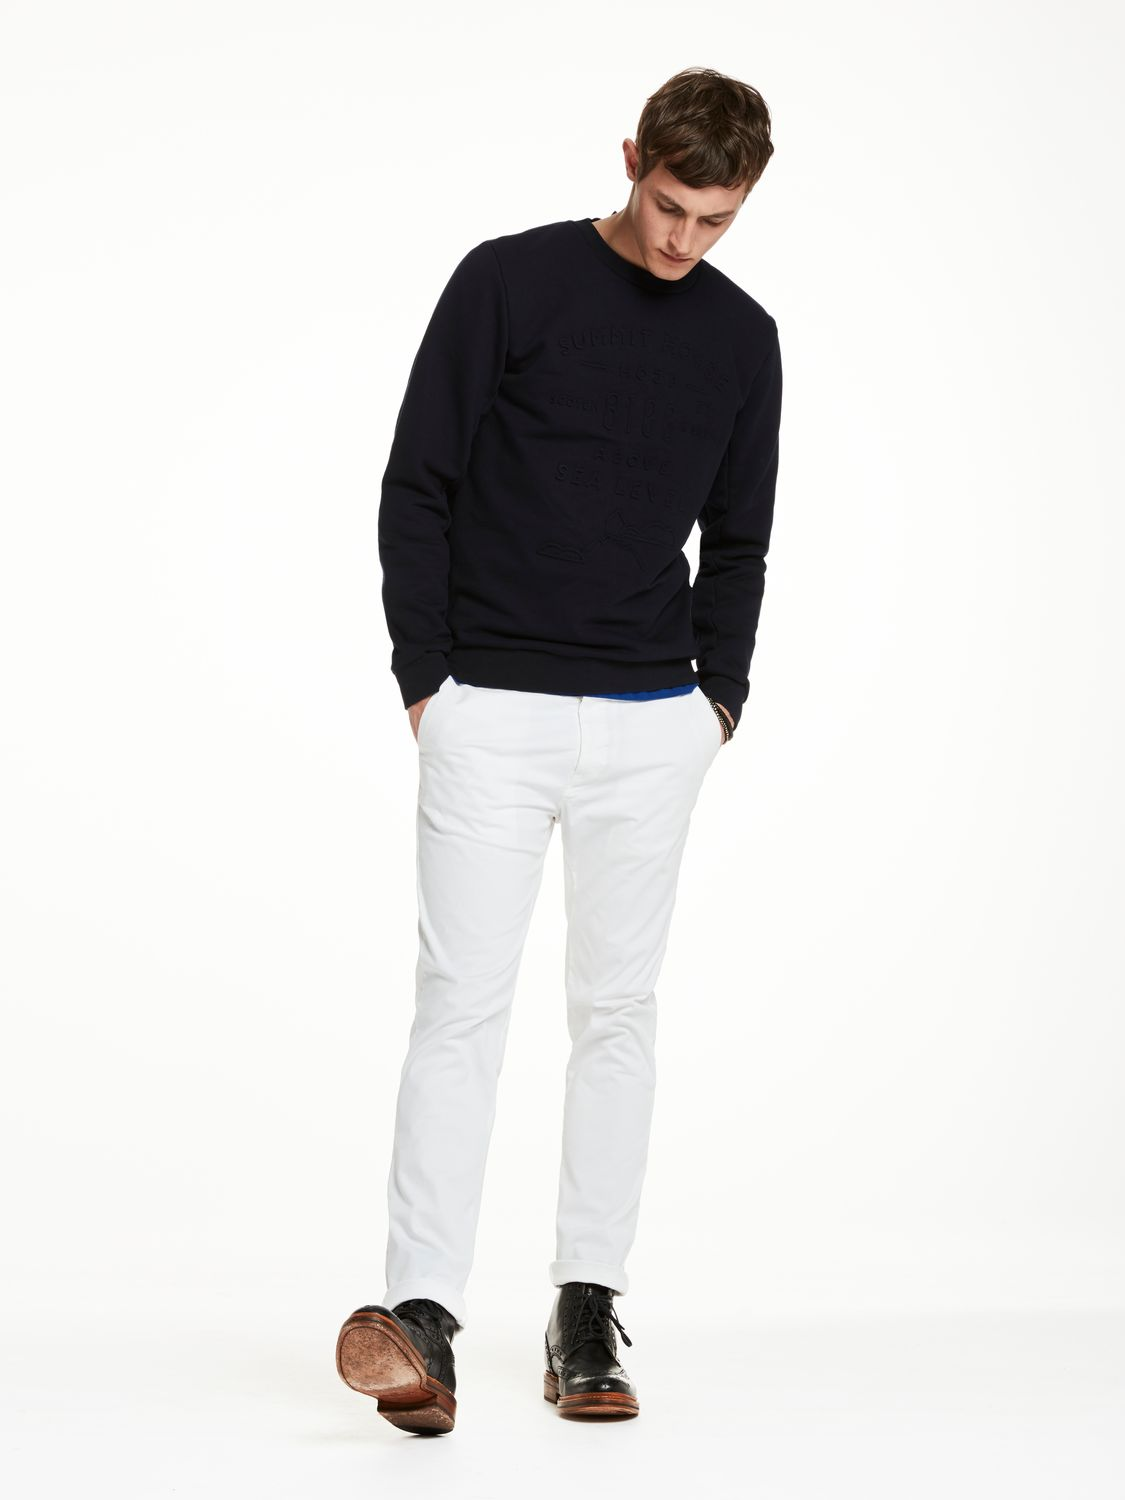 THE ESSENTIAL CHINOS - SHOP NOW